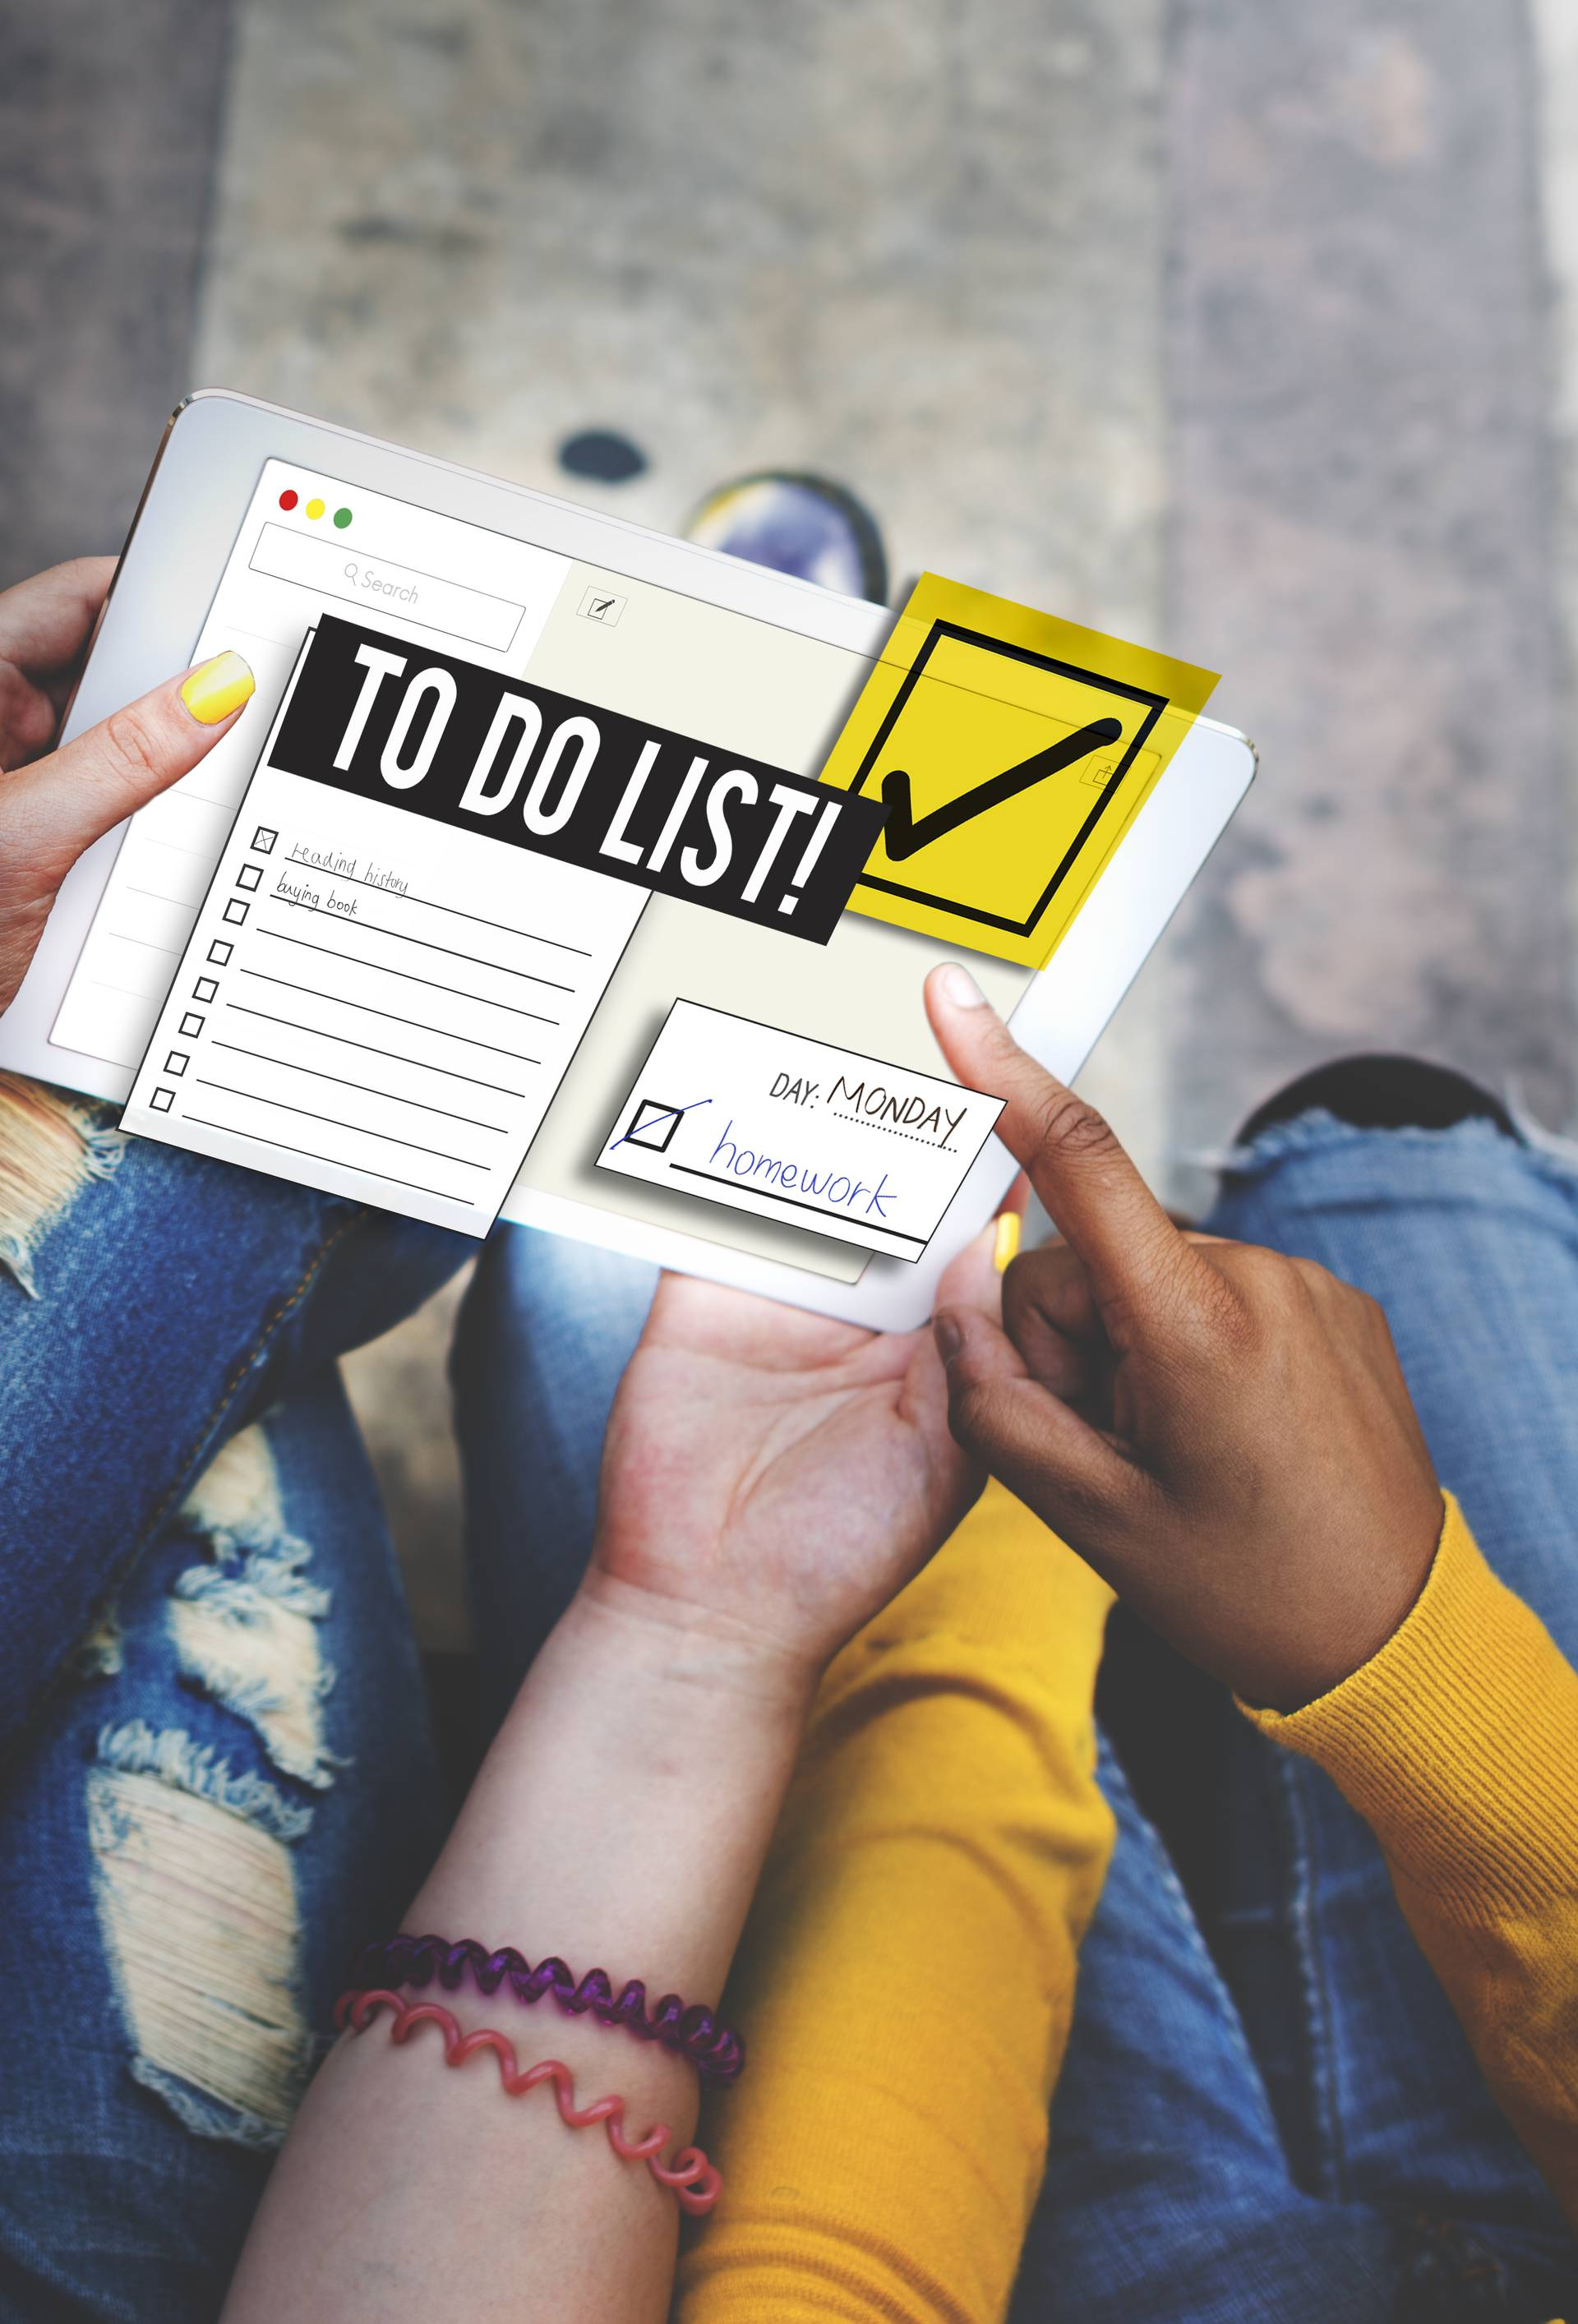 To Do List Time Management Reminder Prioritize Concept